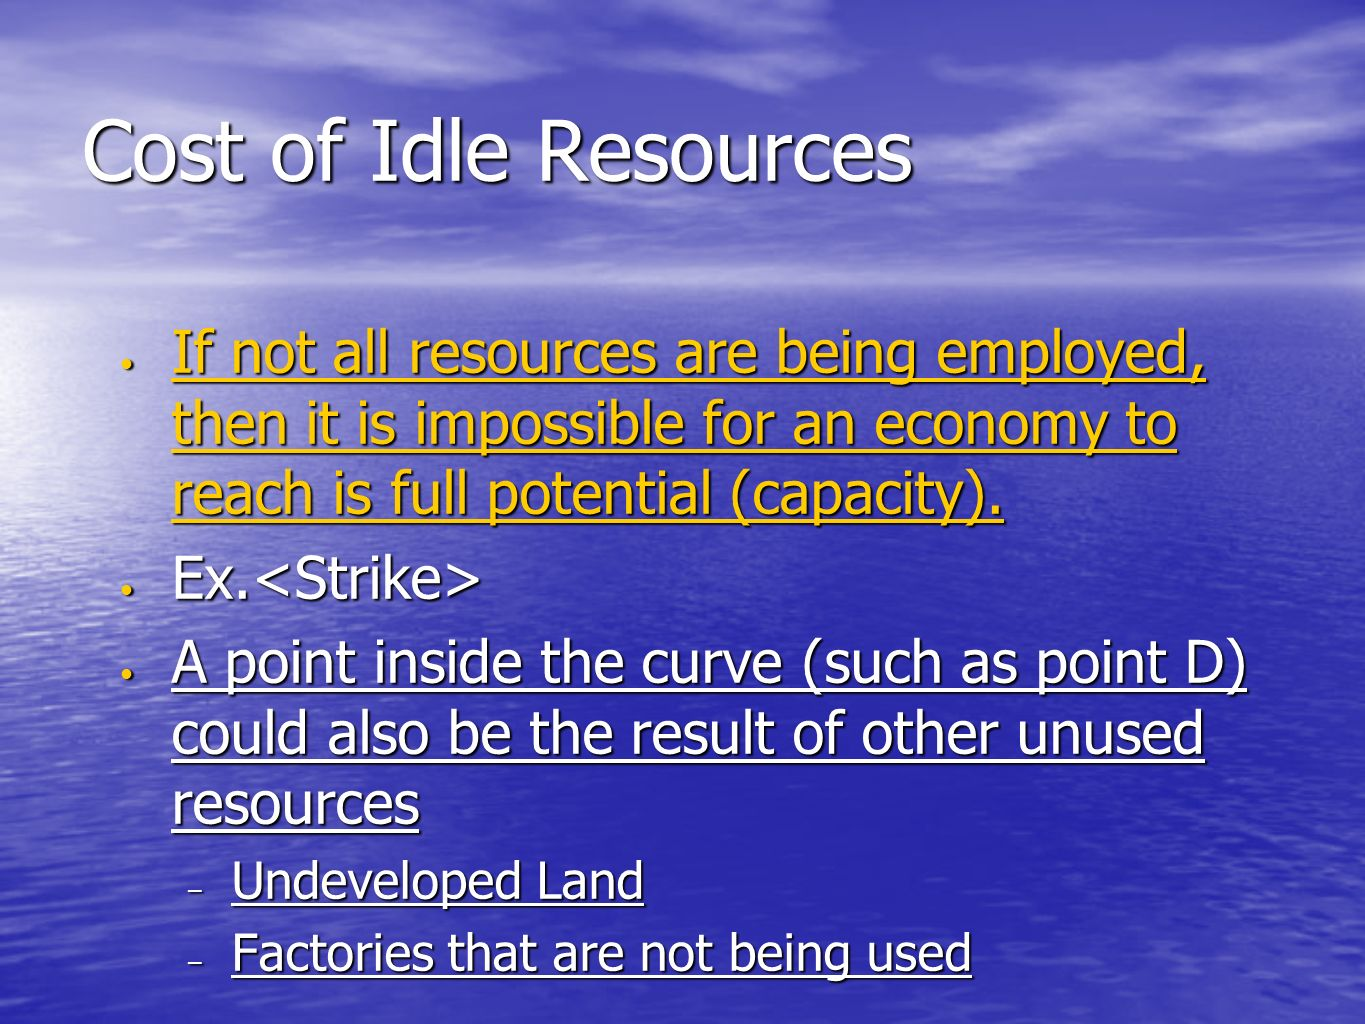 Cost of Idle Resources If not all resources are being employed, then it is impossible for an economy to reach is full potential (capacity).